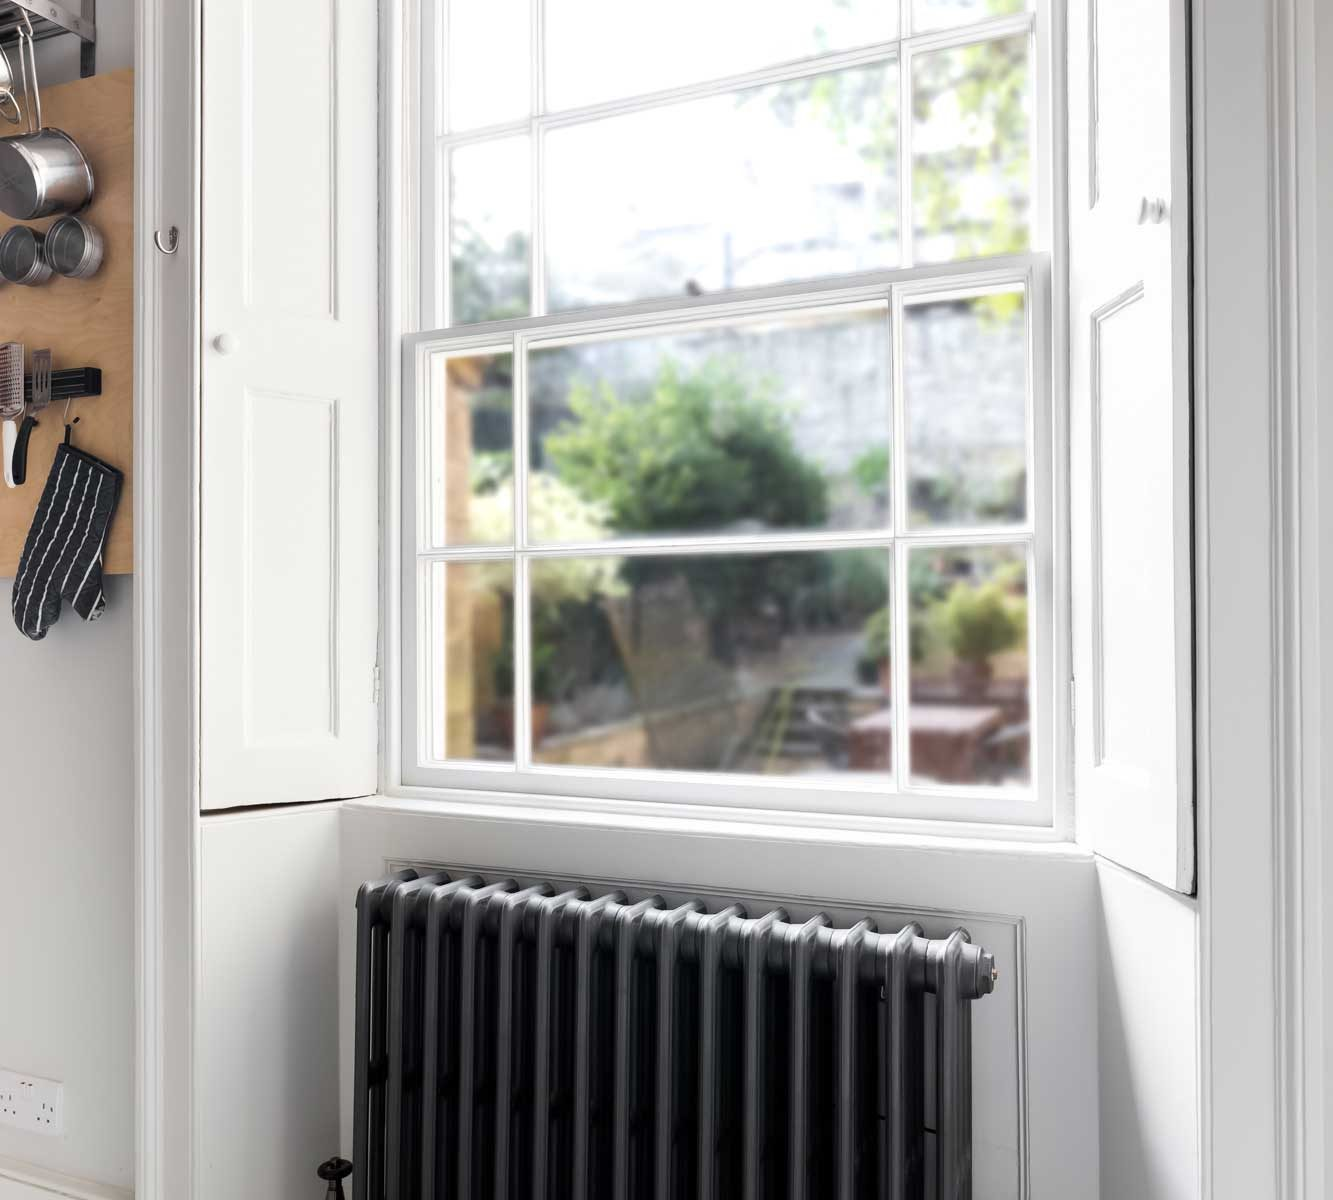 Restored sash window in kitchen